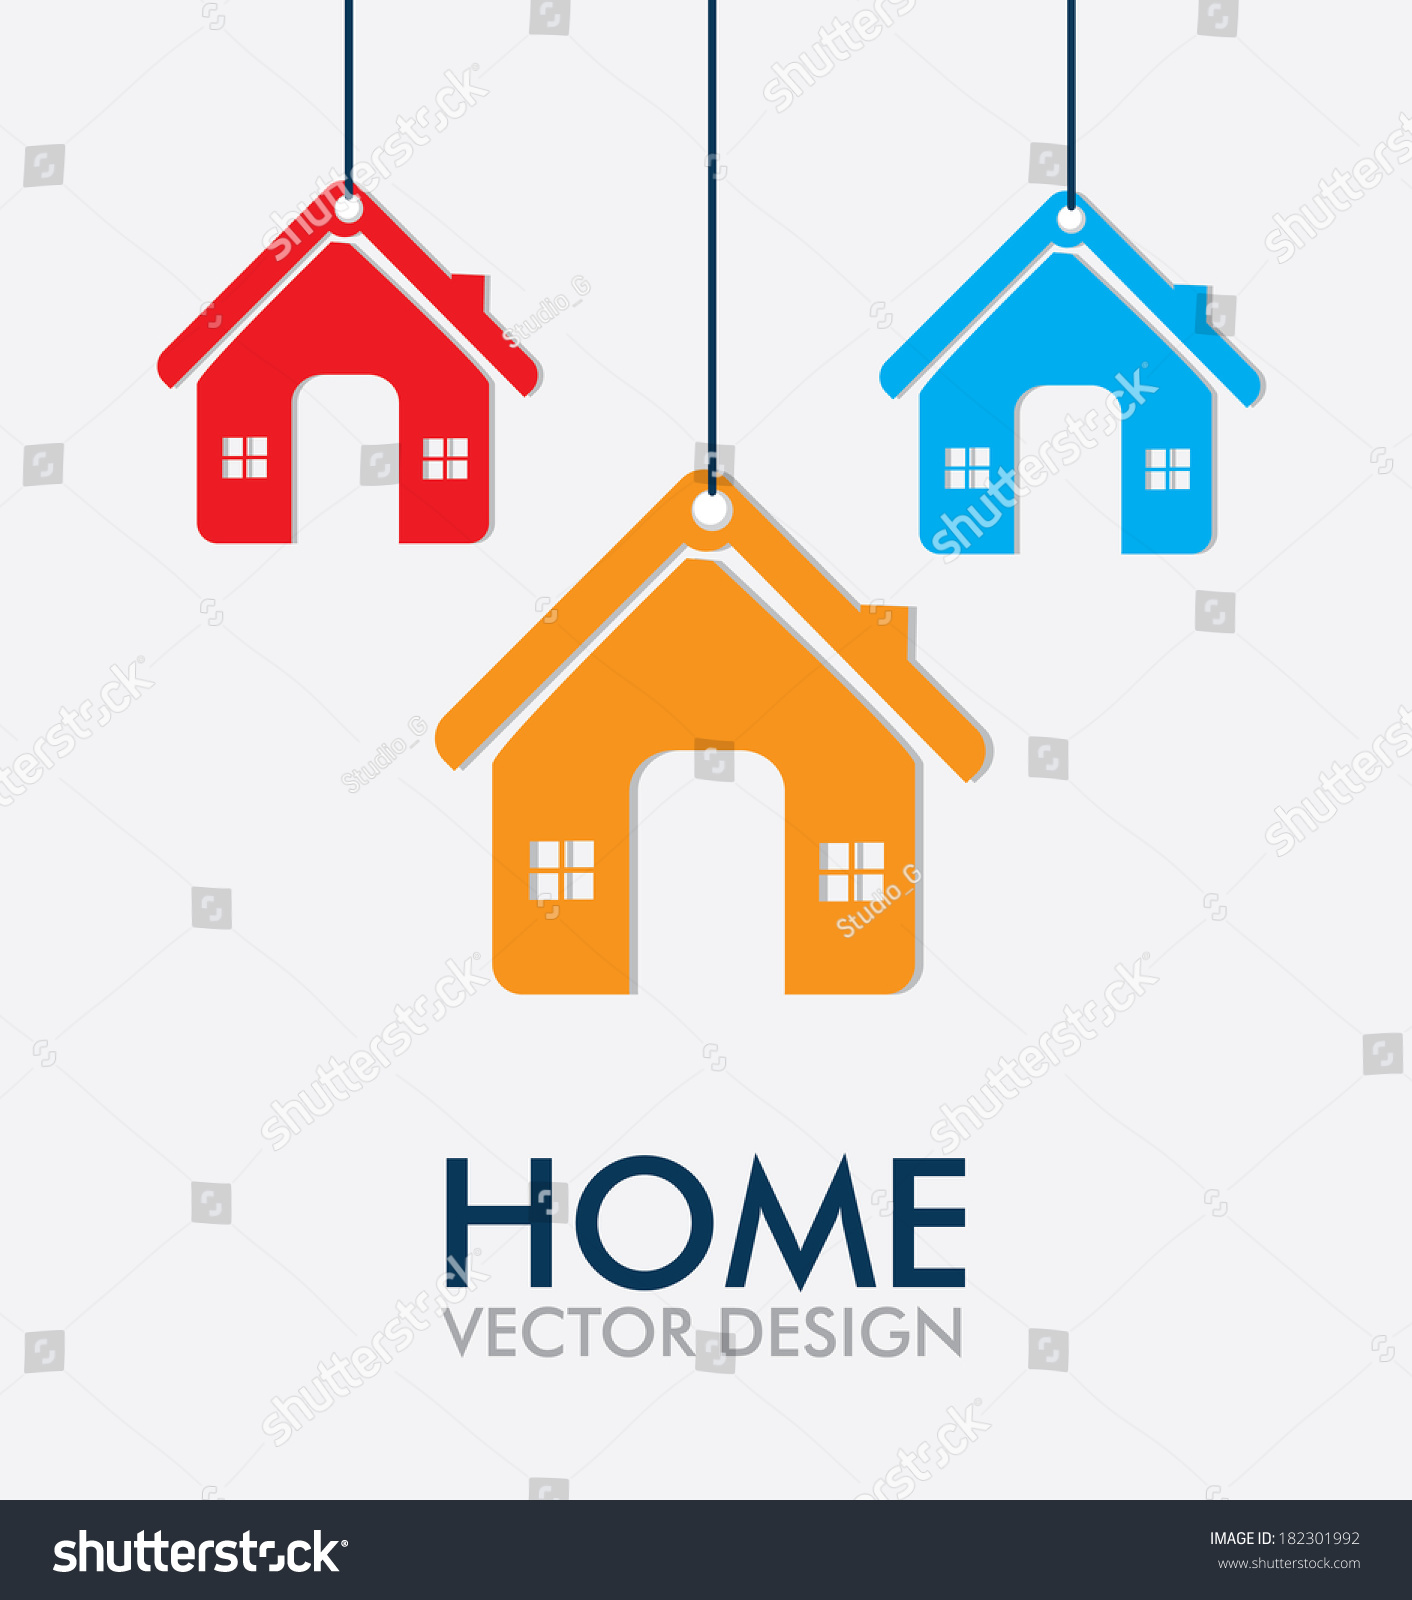 Home Design Over Gray Background Vector Stock Vector 182301992 ...